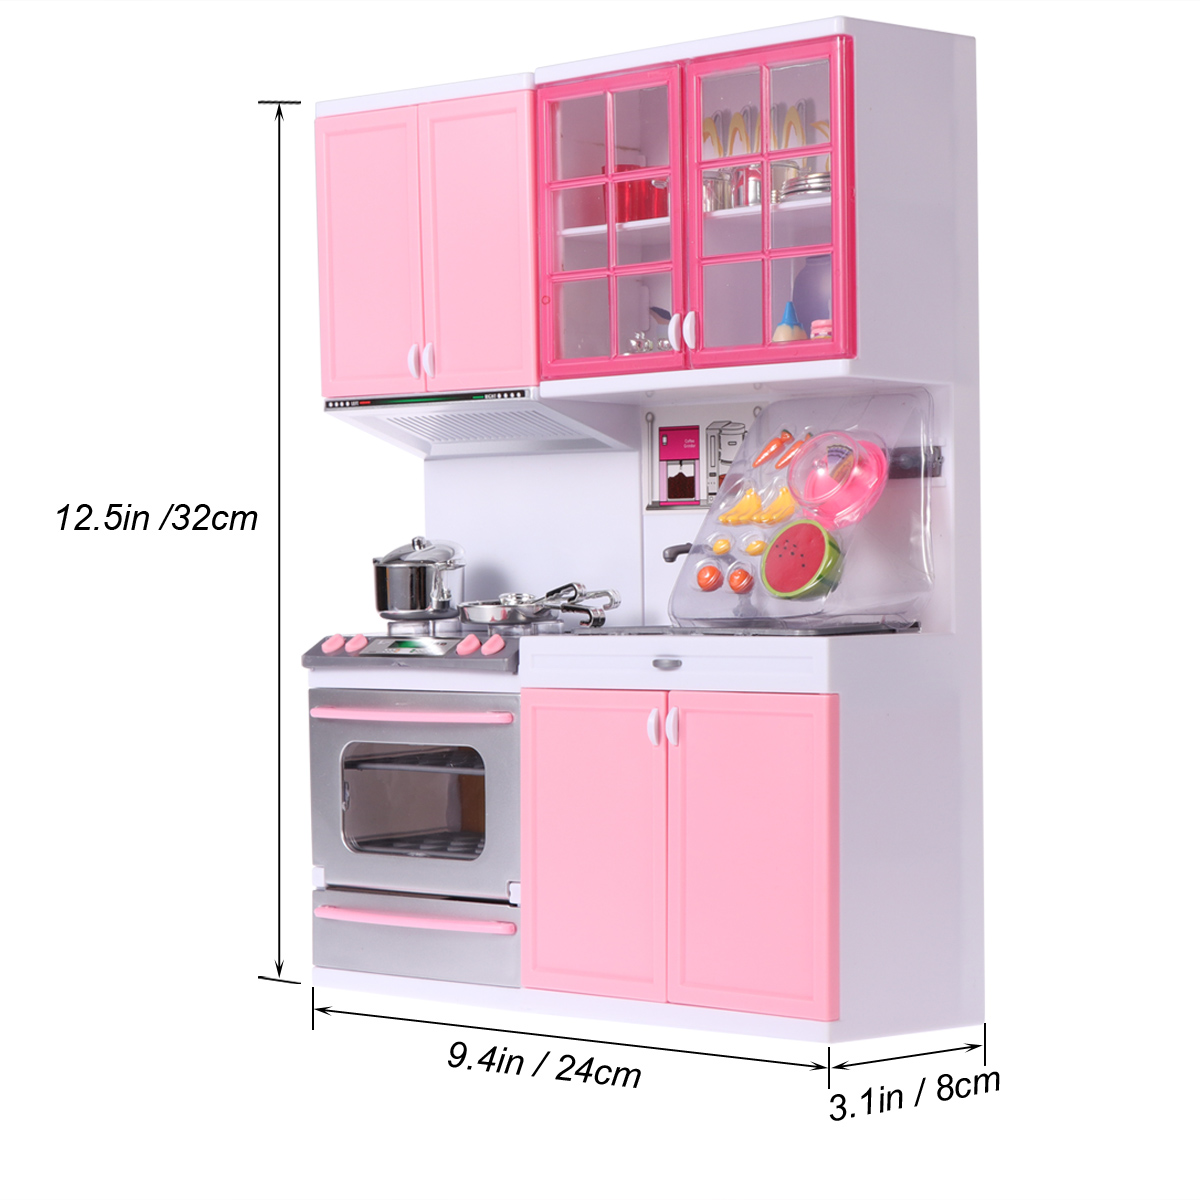 1 x plastic kitchenware playing house games tools kitchen set for kids girlspink